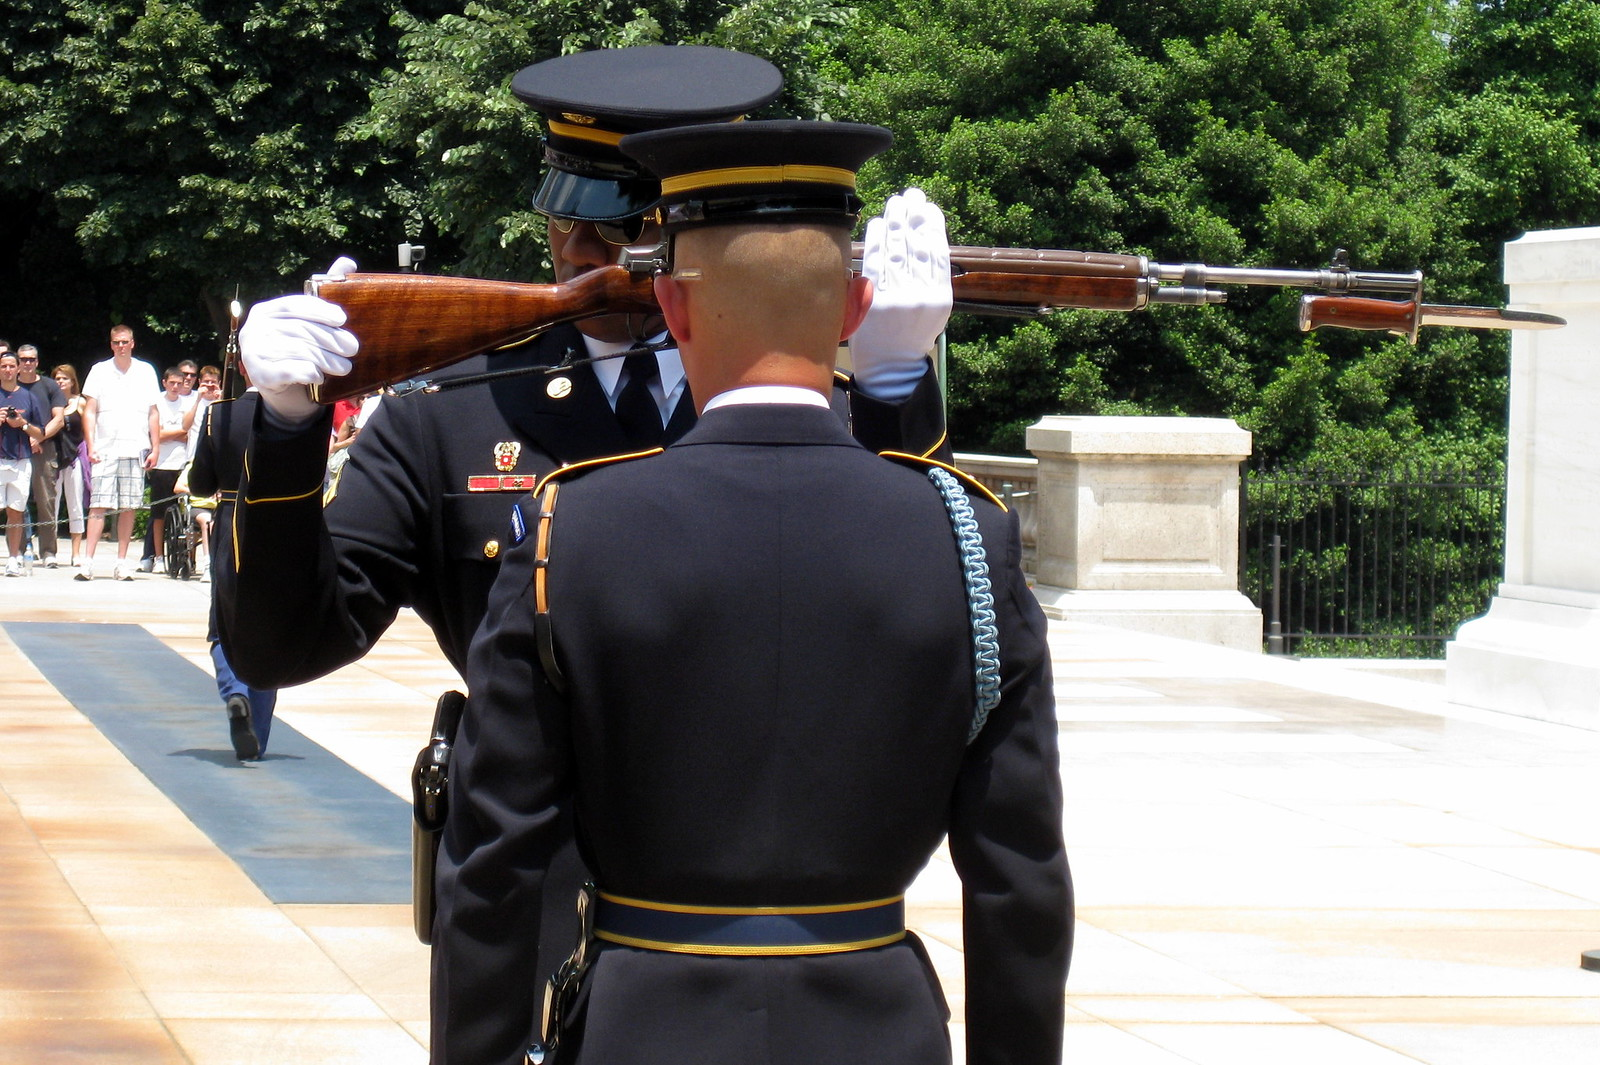 Virginia - Arlington National Cemetery: The Tomb of the Unknowns - Changing of the Guards